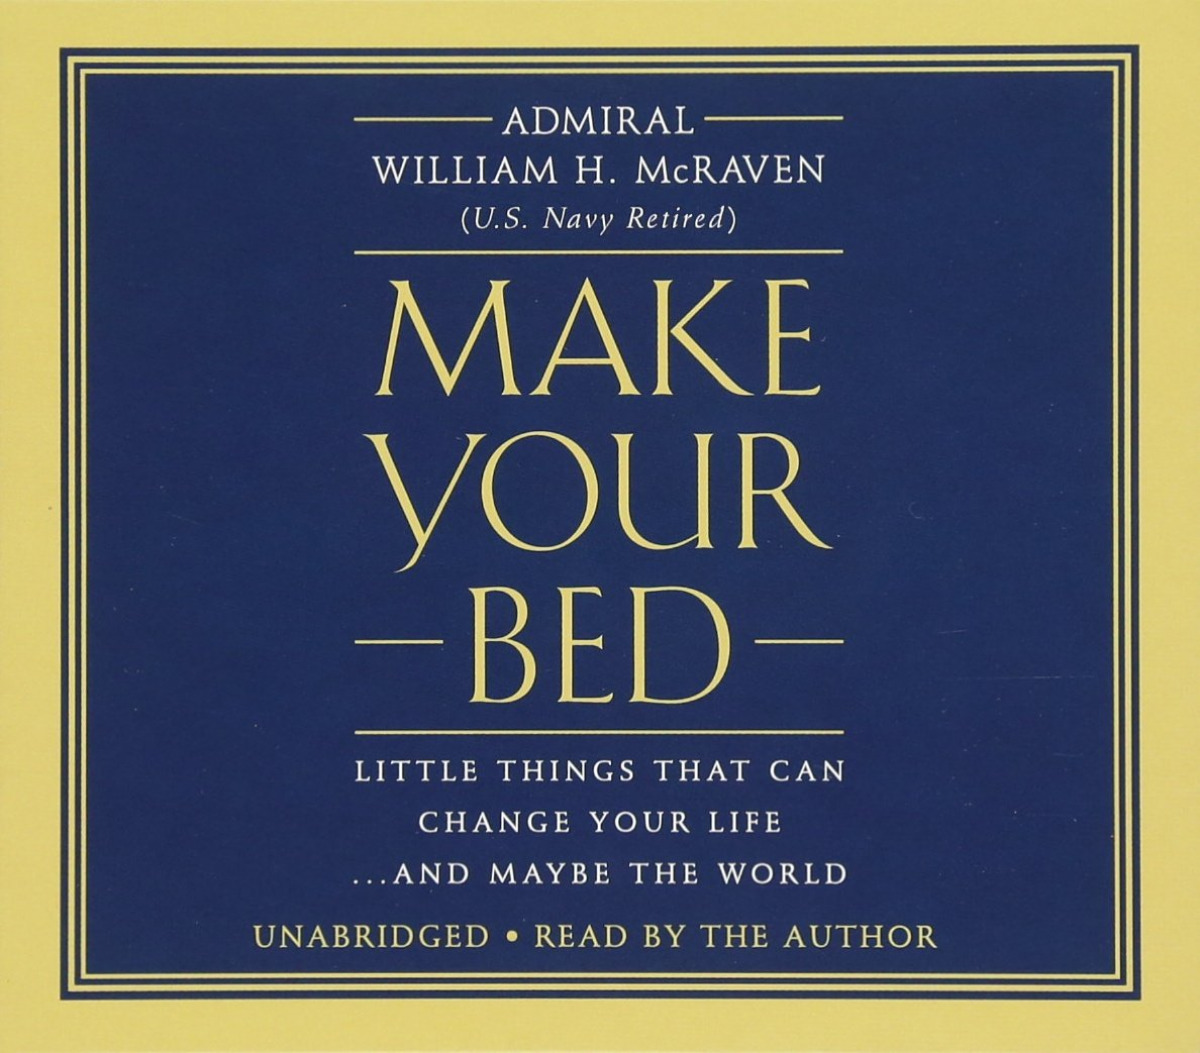 Make your bed:little things that